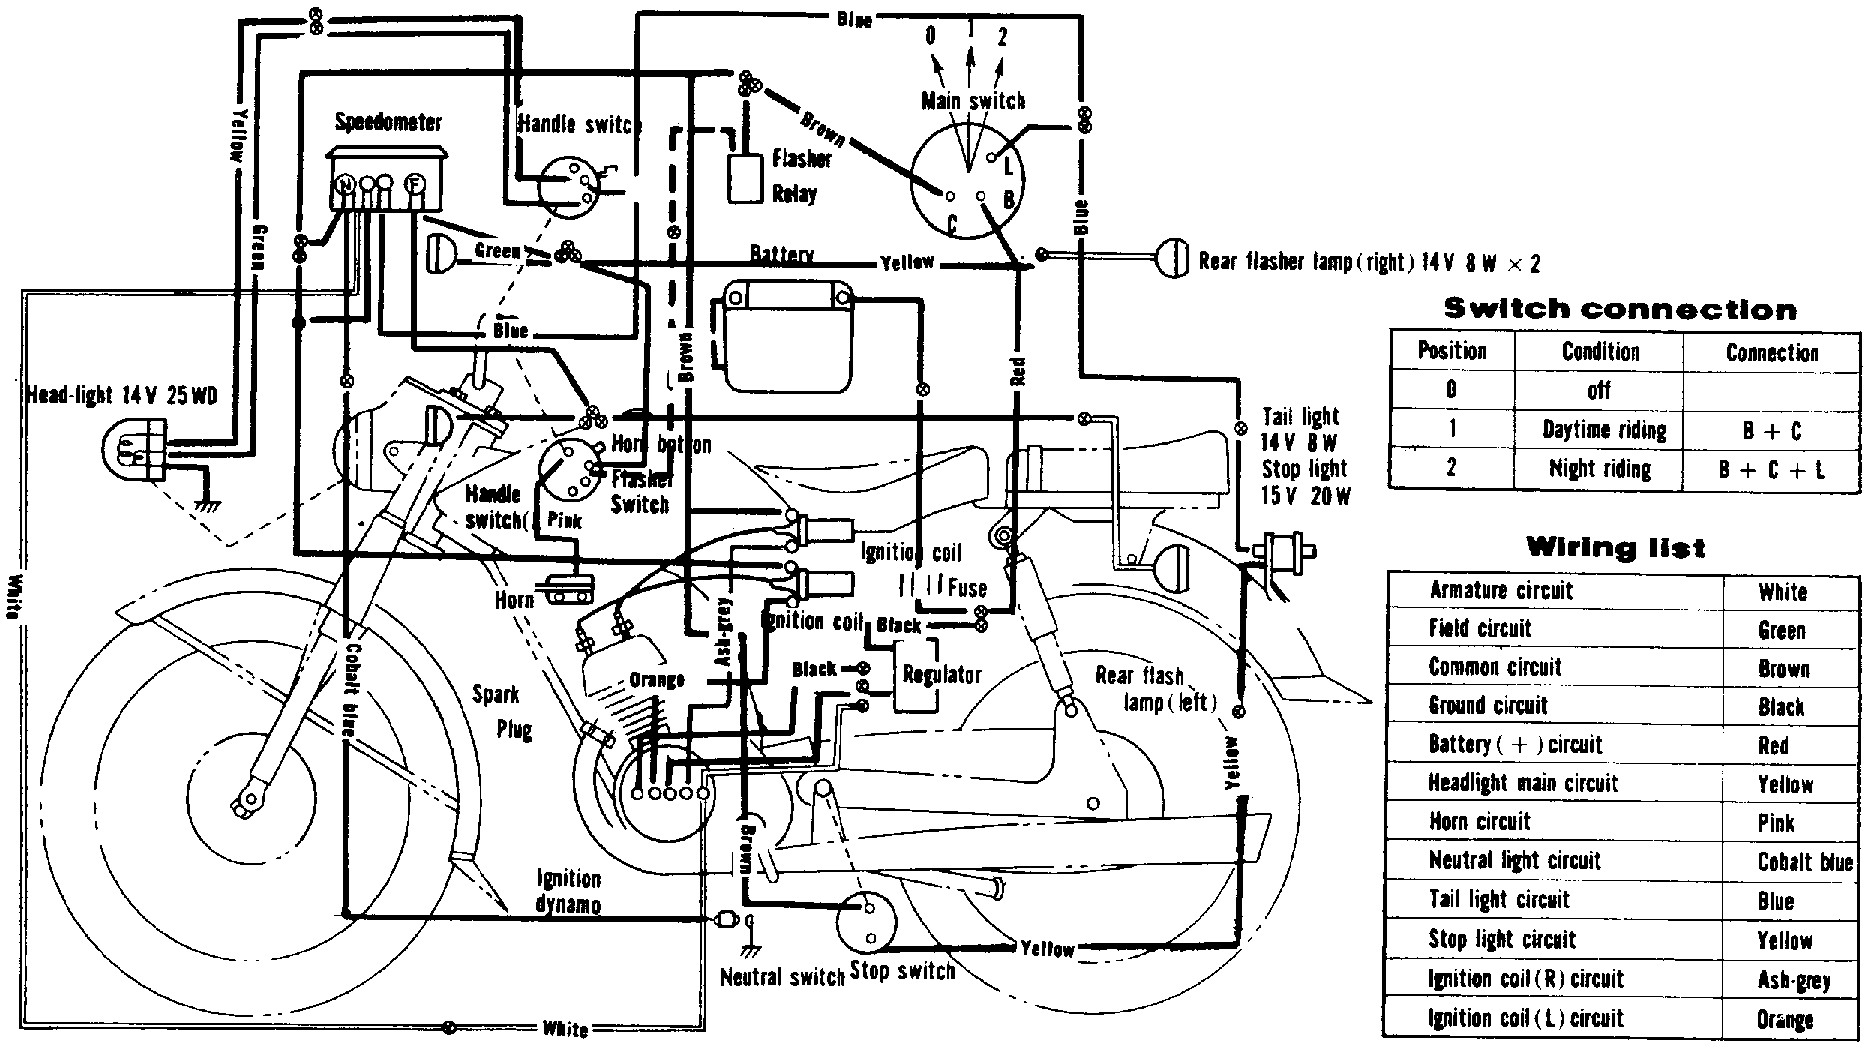 Xs1100 Wiring Diagram Great Design Of Yamaha Xs650 78 80 L2gf Schematics Diagrams U2022 Rh Schoosretailstores Com 1980